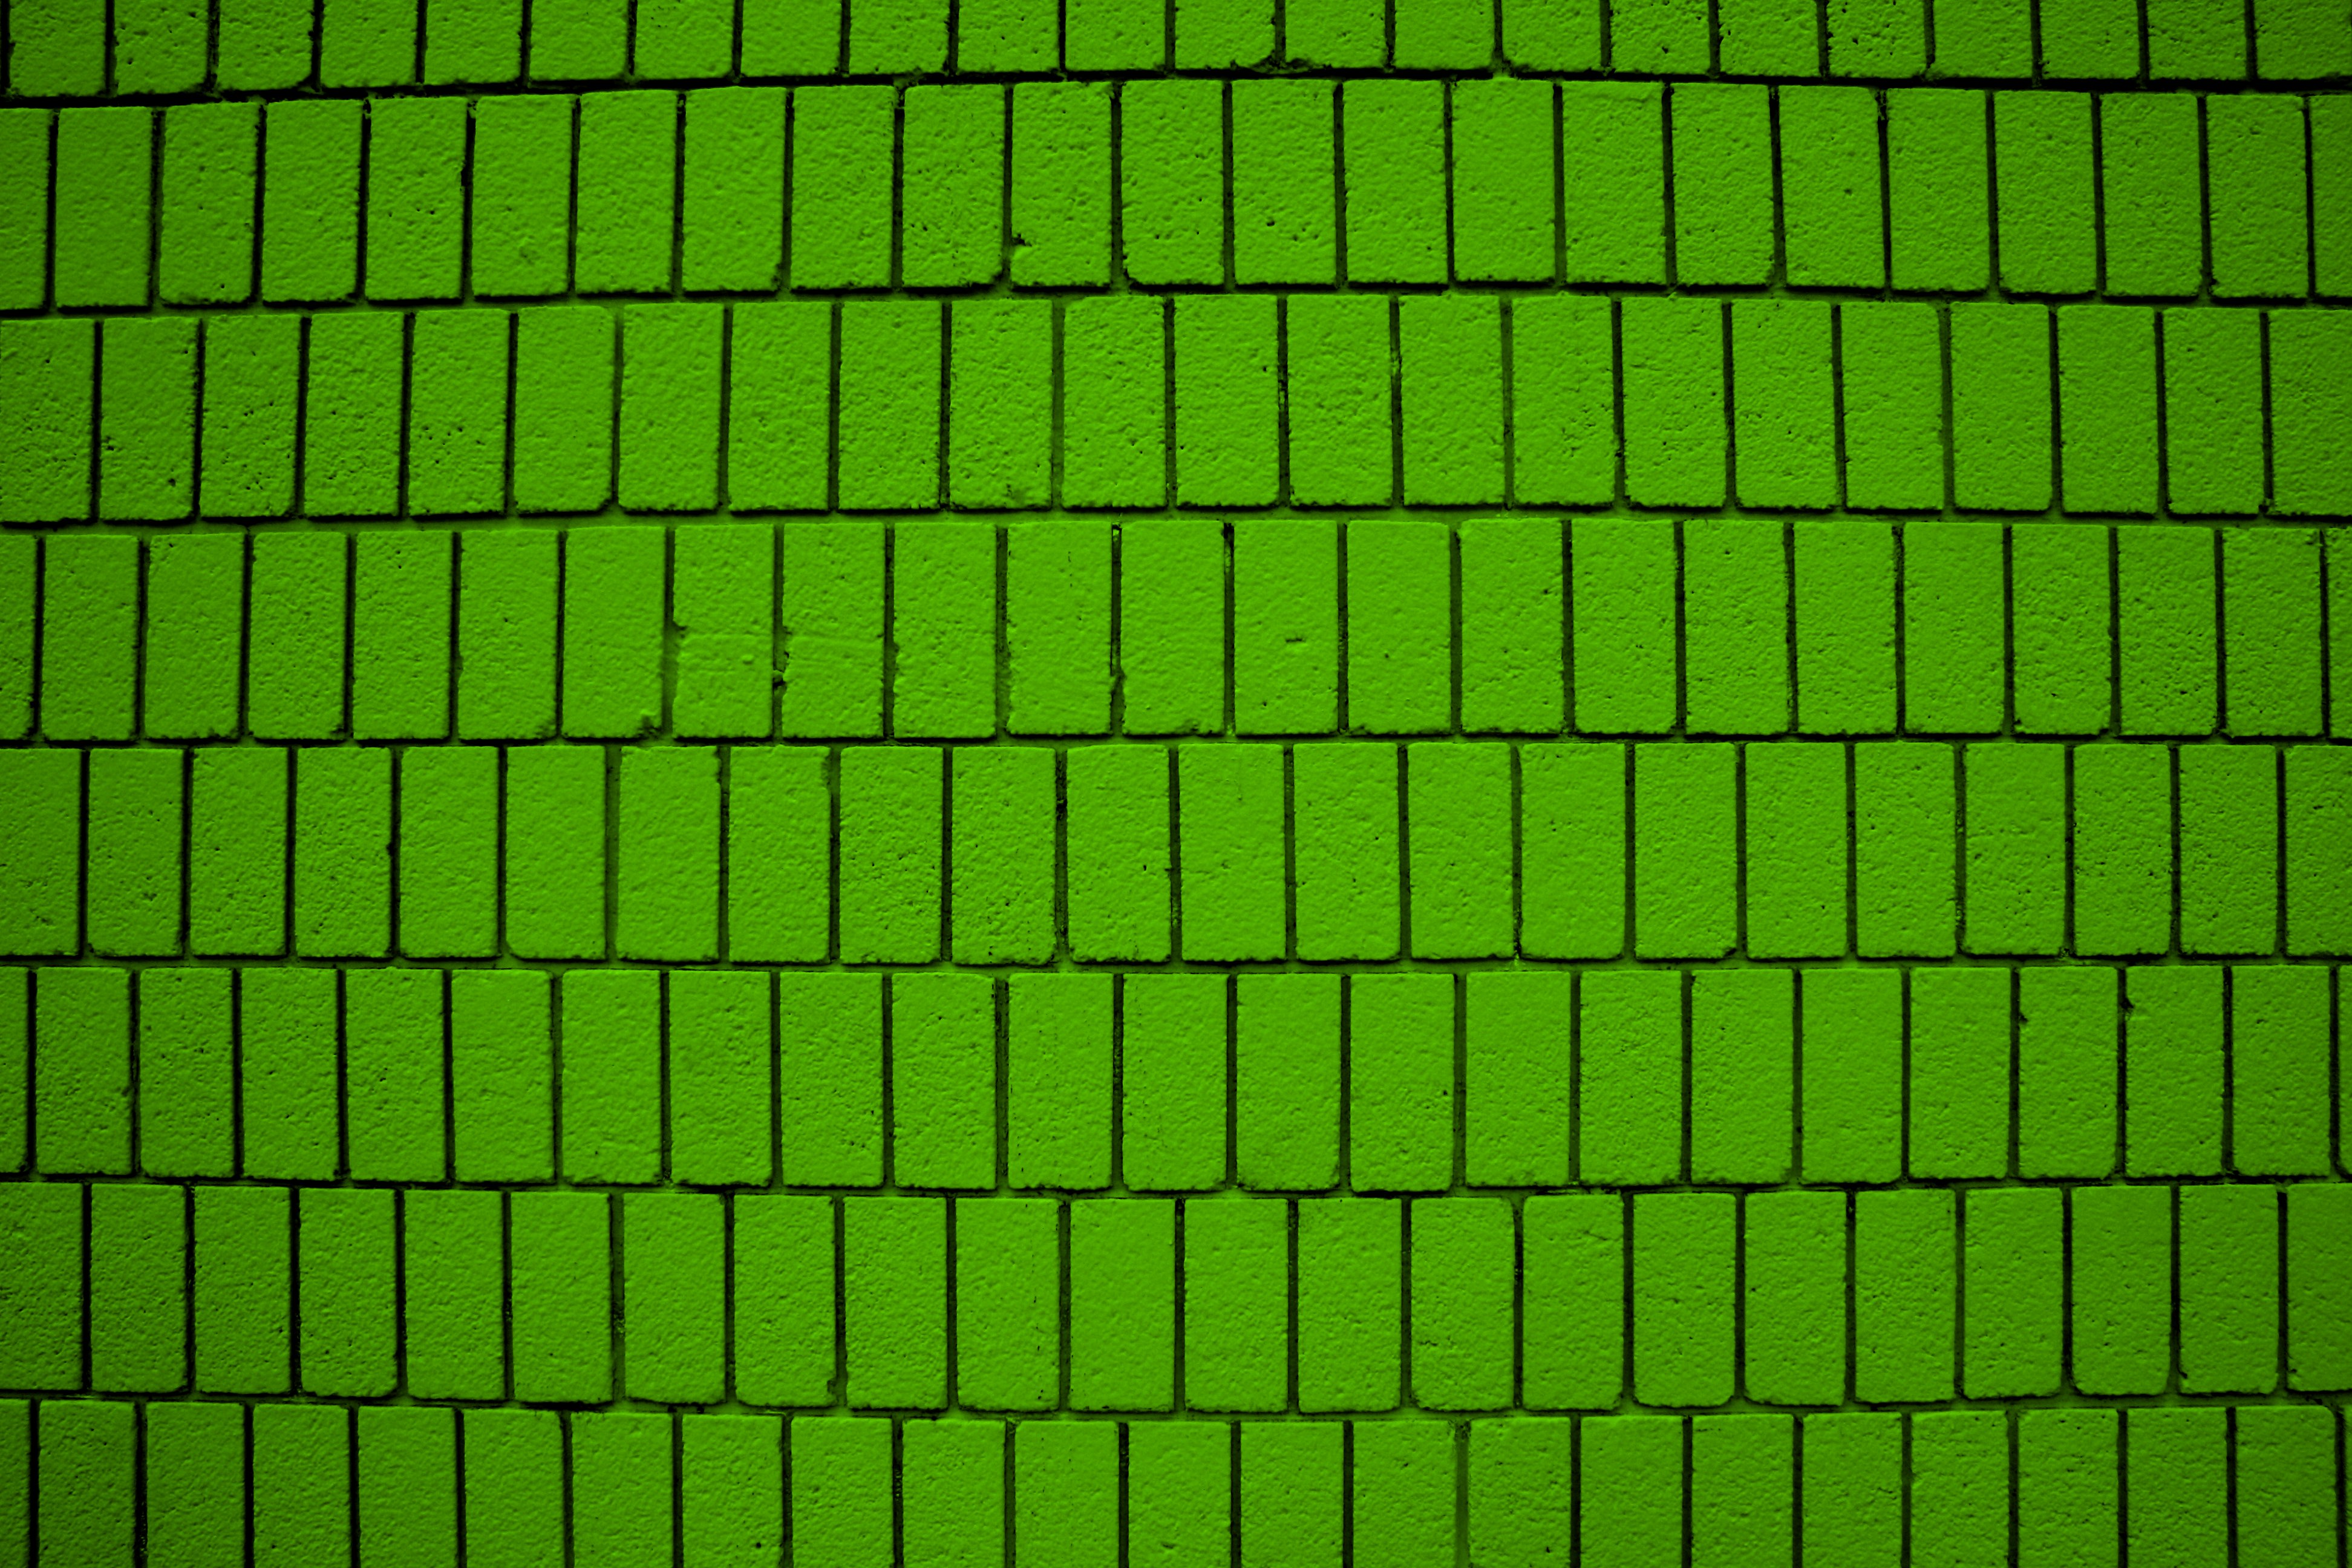 Lime Brick On Image : Lime green brick wall texture with vertical bricks picture